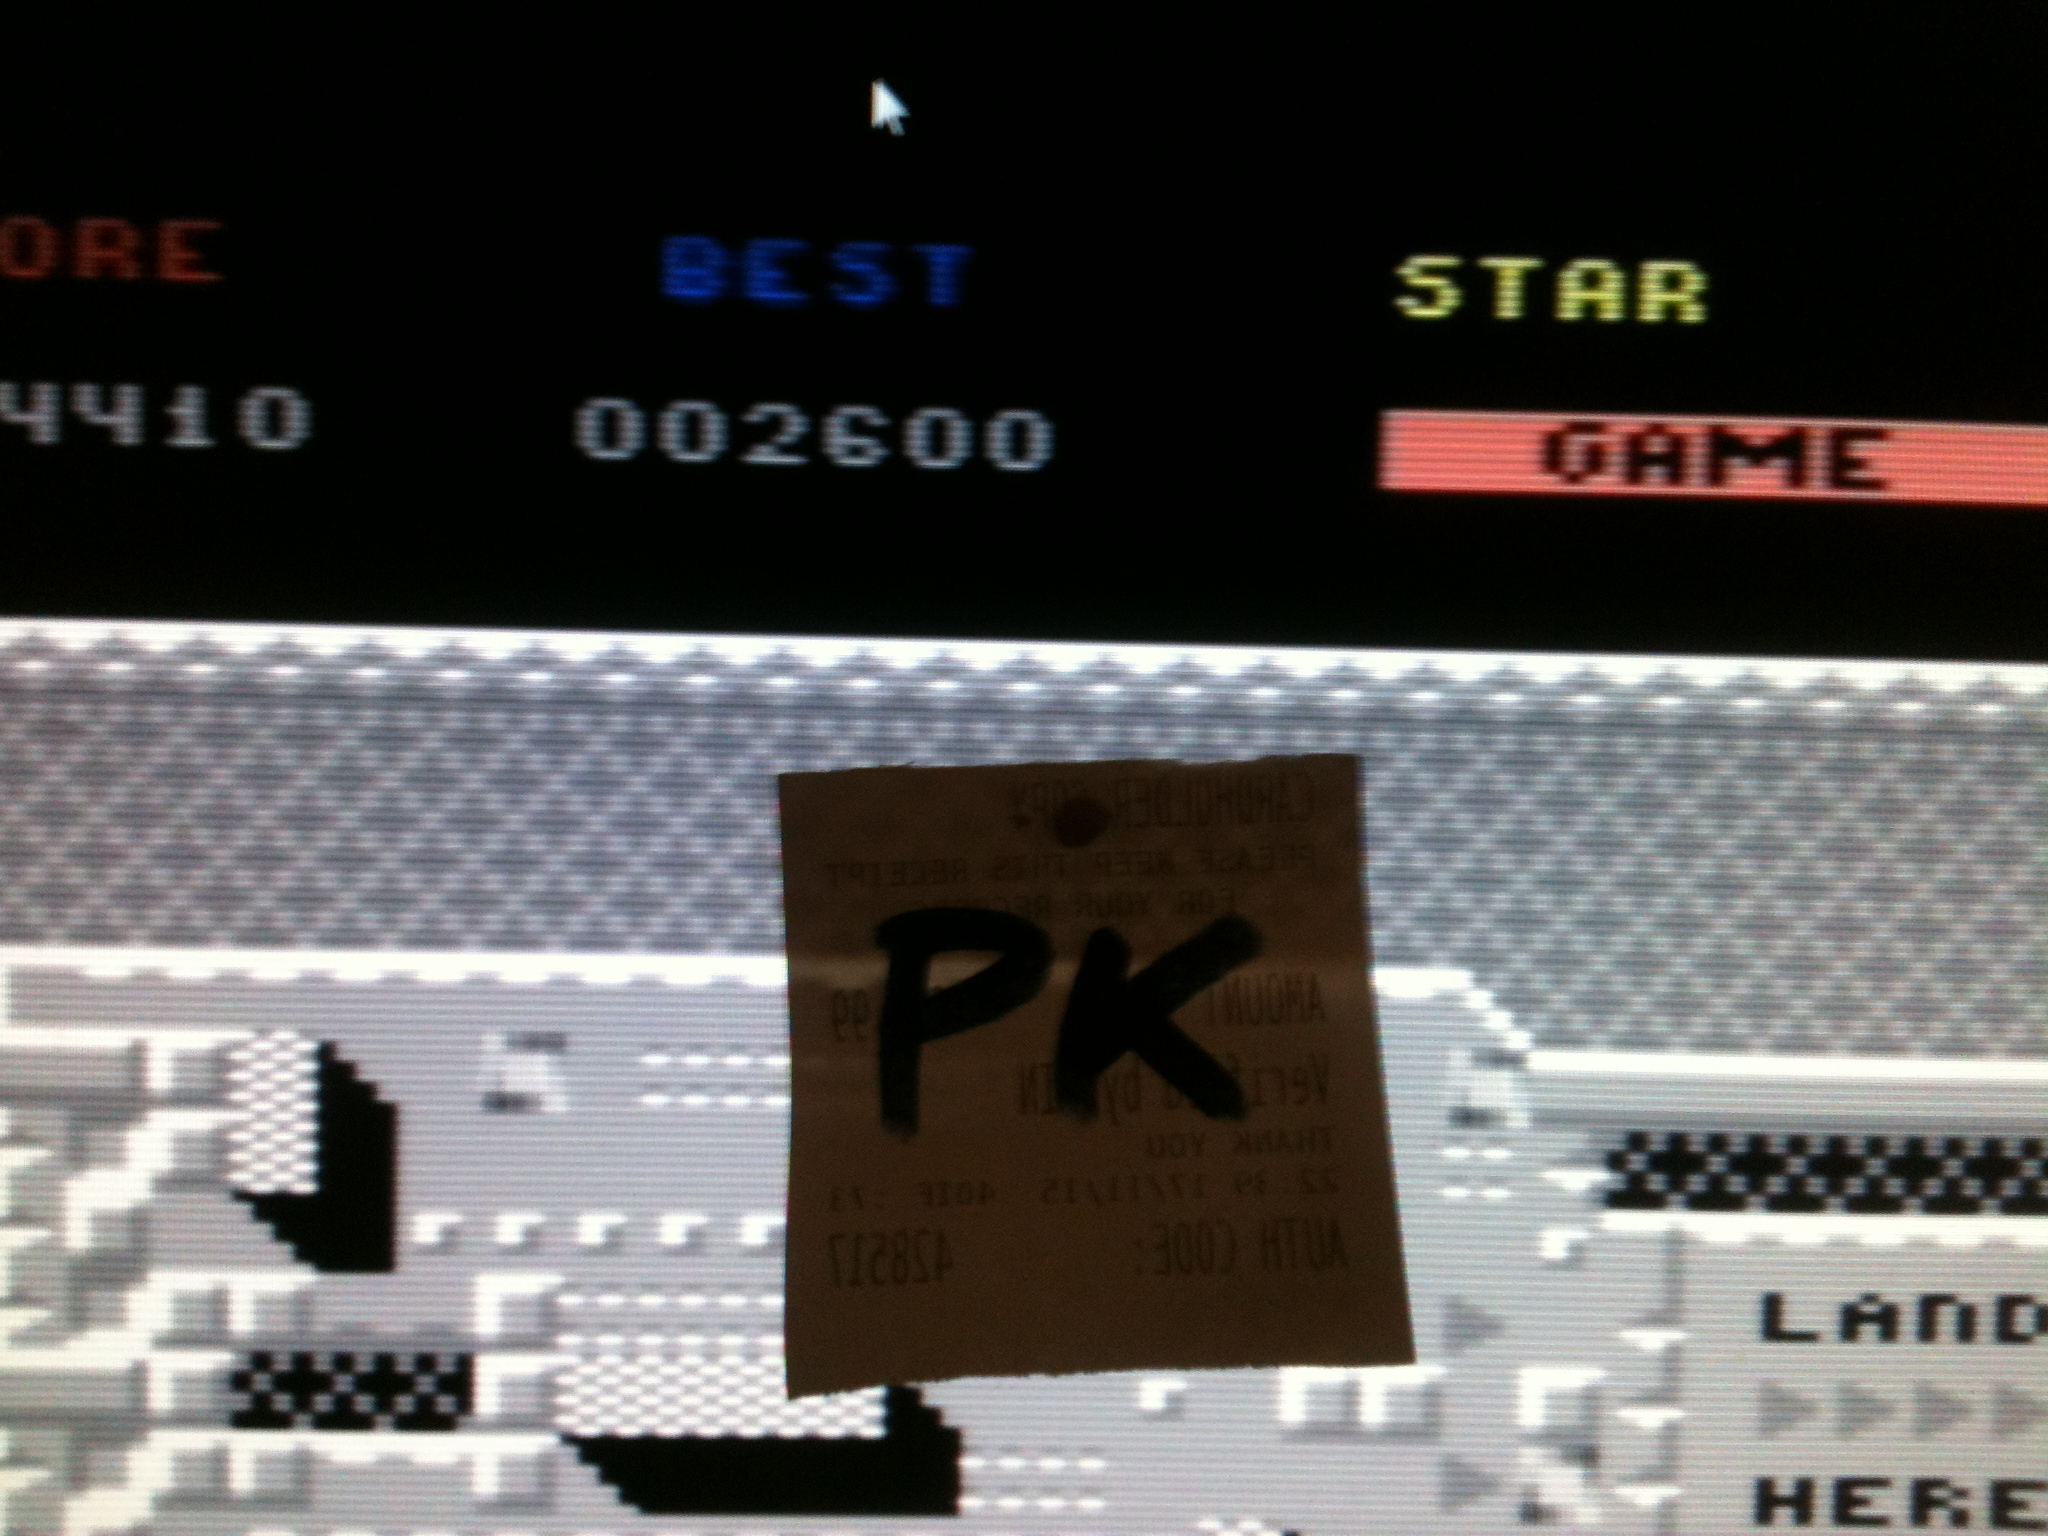 kernzy: Electra [Beginner] (Commodore 64 Emulated) 4,410 points on 2015-12-07 14:39:36